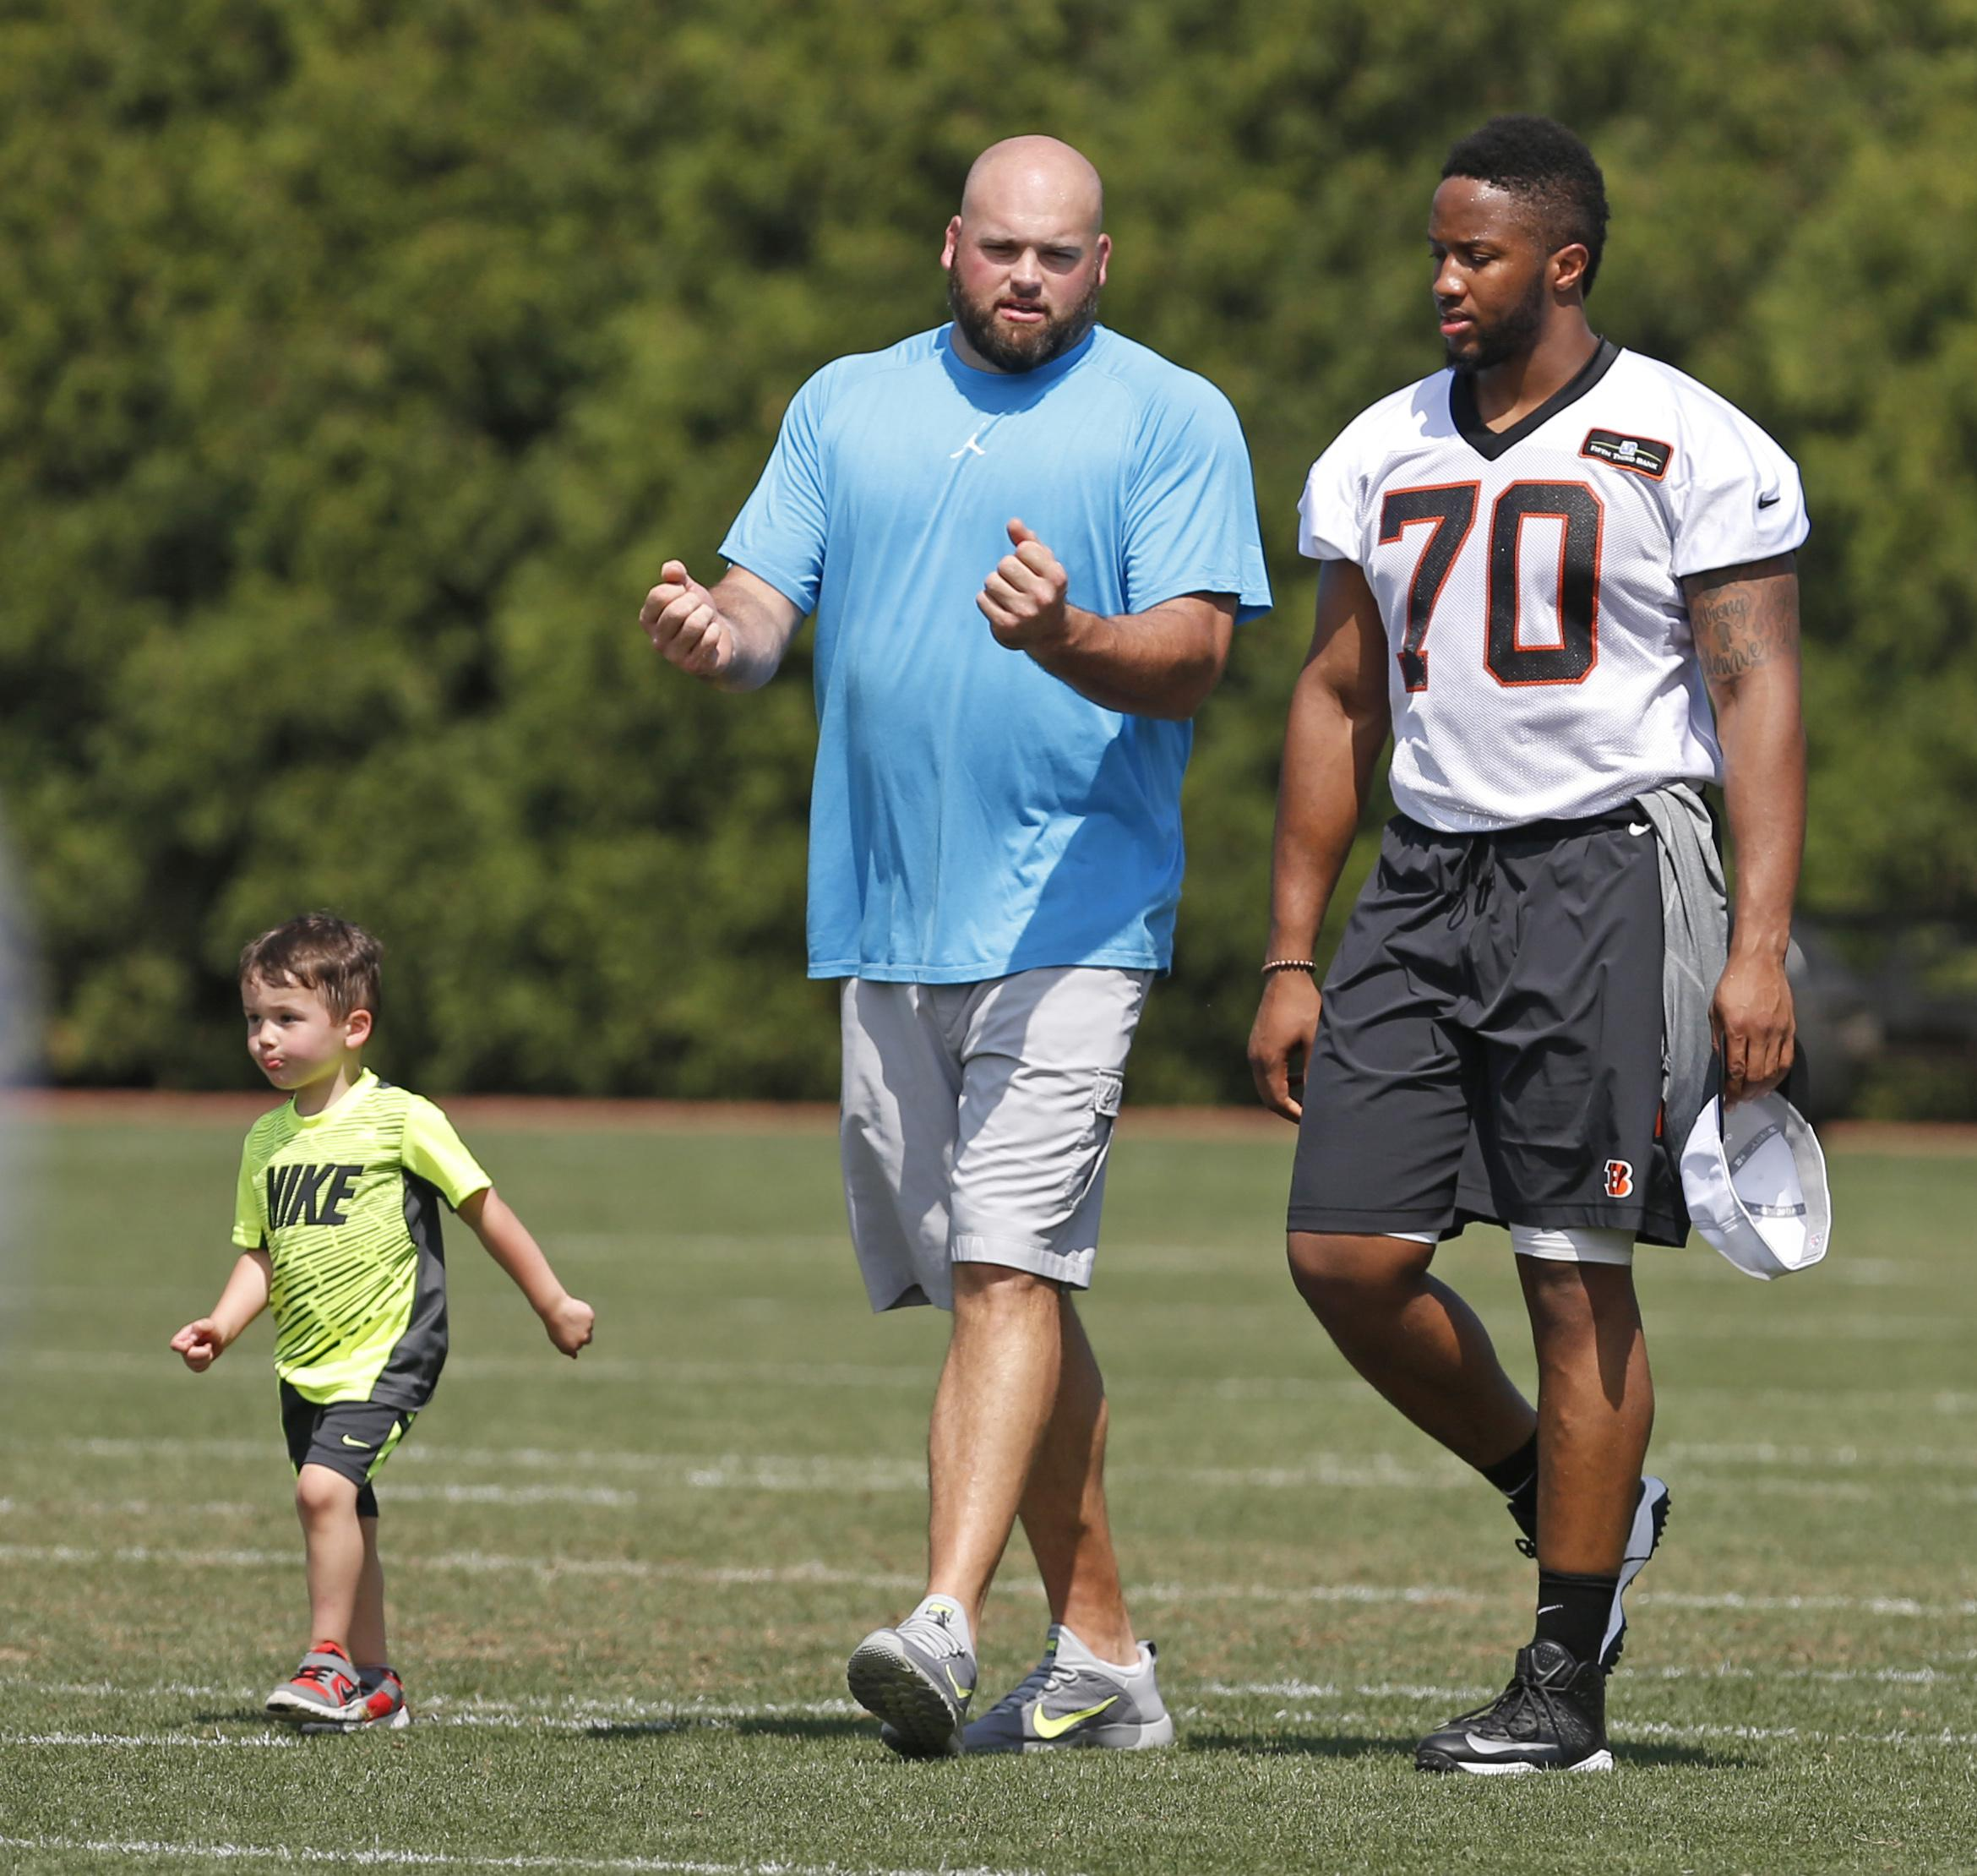 Andrew Whitworth talks to Bengals owners about future Washington